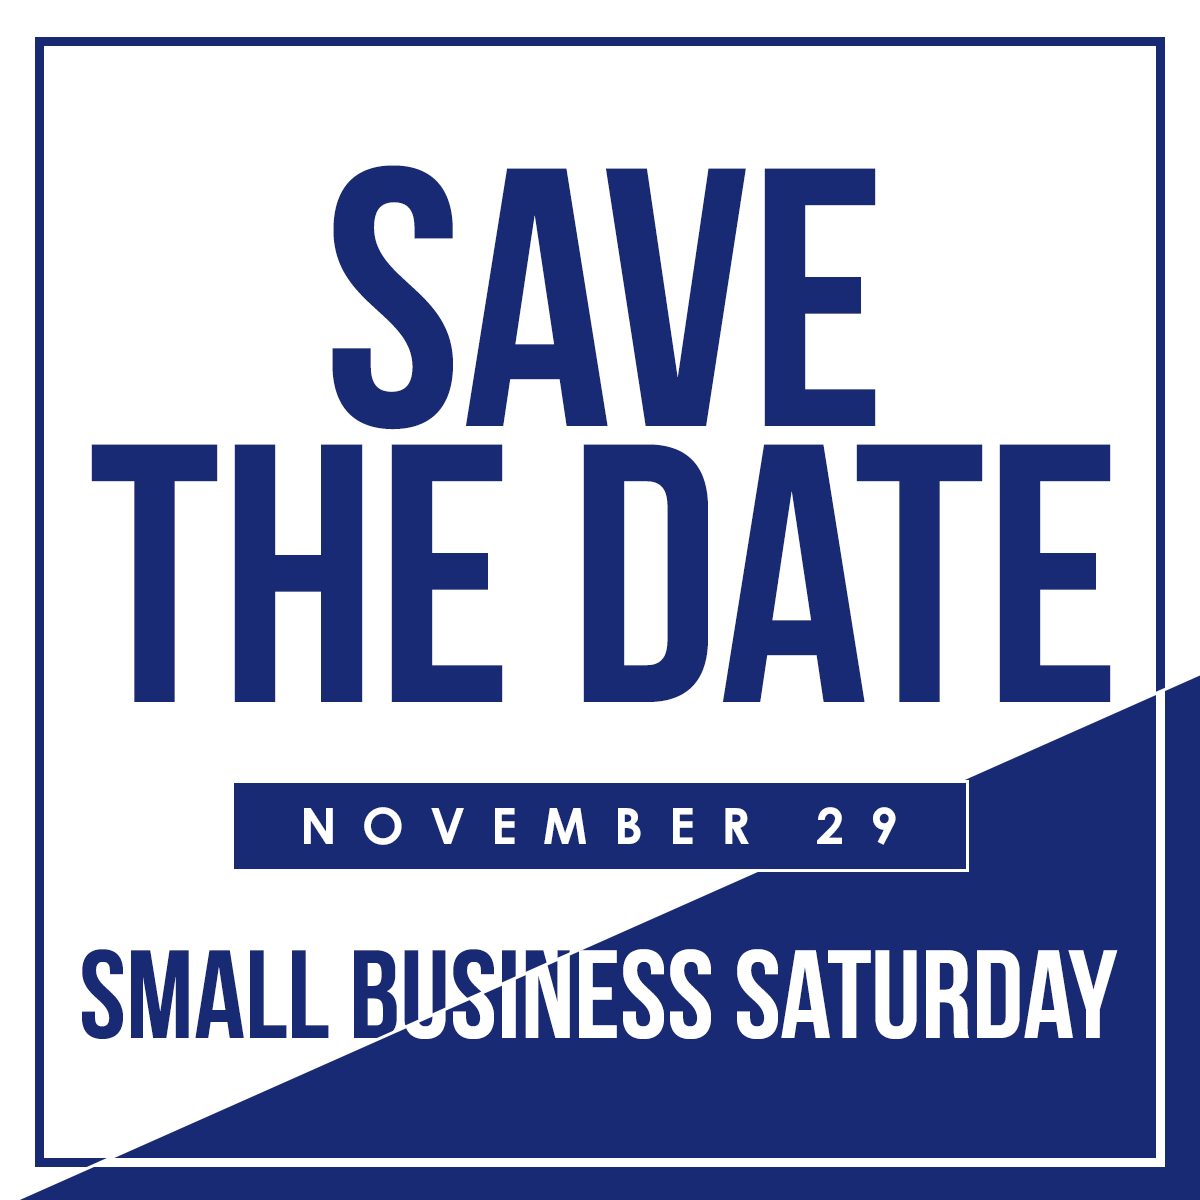 Shop small on Small Business Saturday November 29! # ...